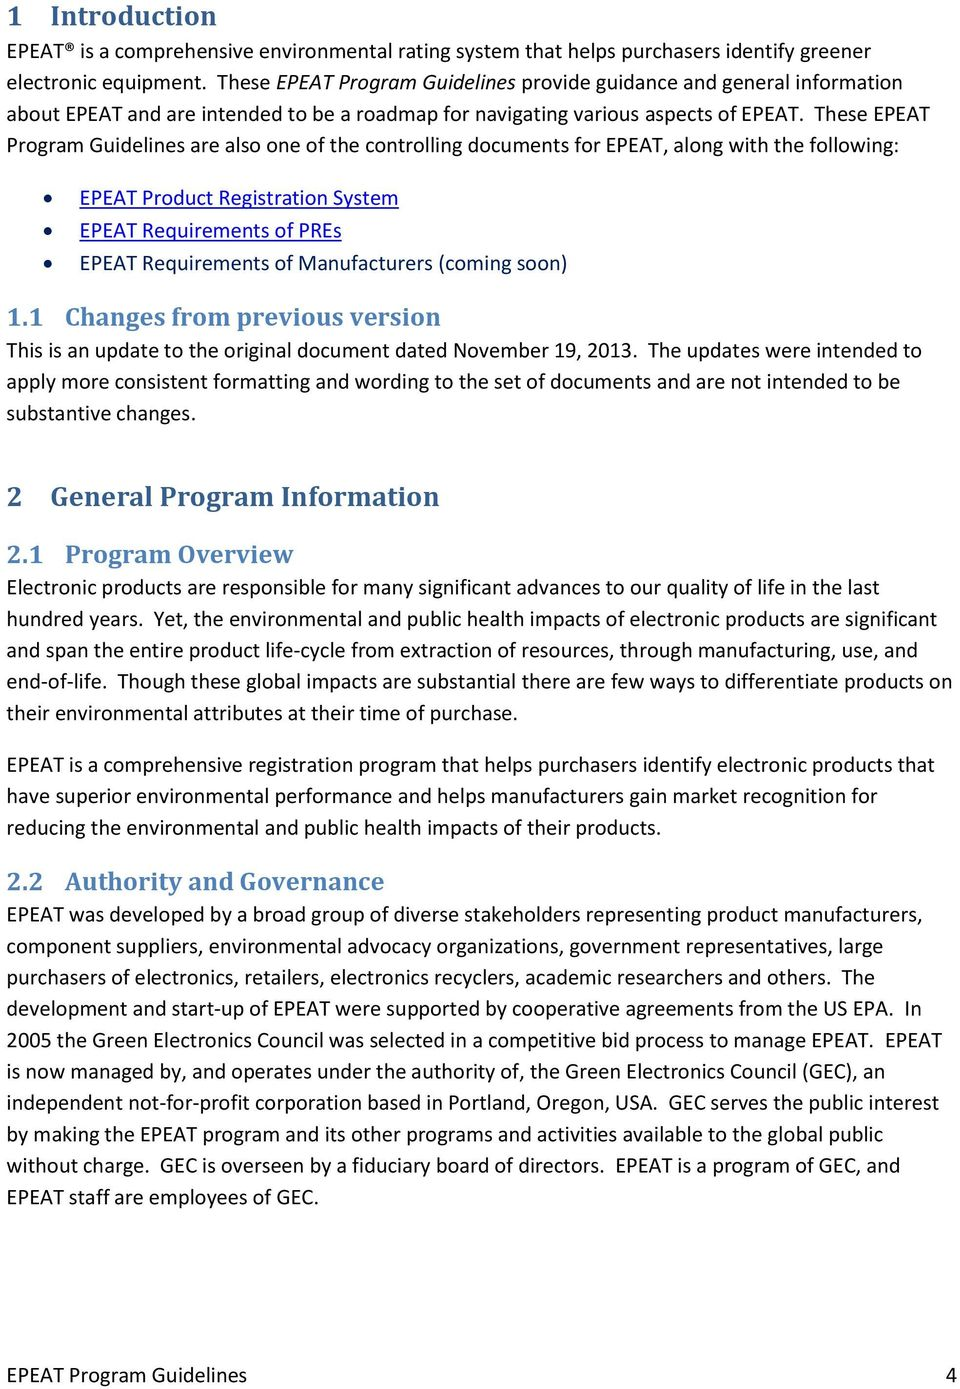 These EPEAT Program Guidelines are also one of the controlling documents for EPEAT, along with the following: EPEAT Product Registration System EPEAT Requirements of PREs EPEAT Requirements of